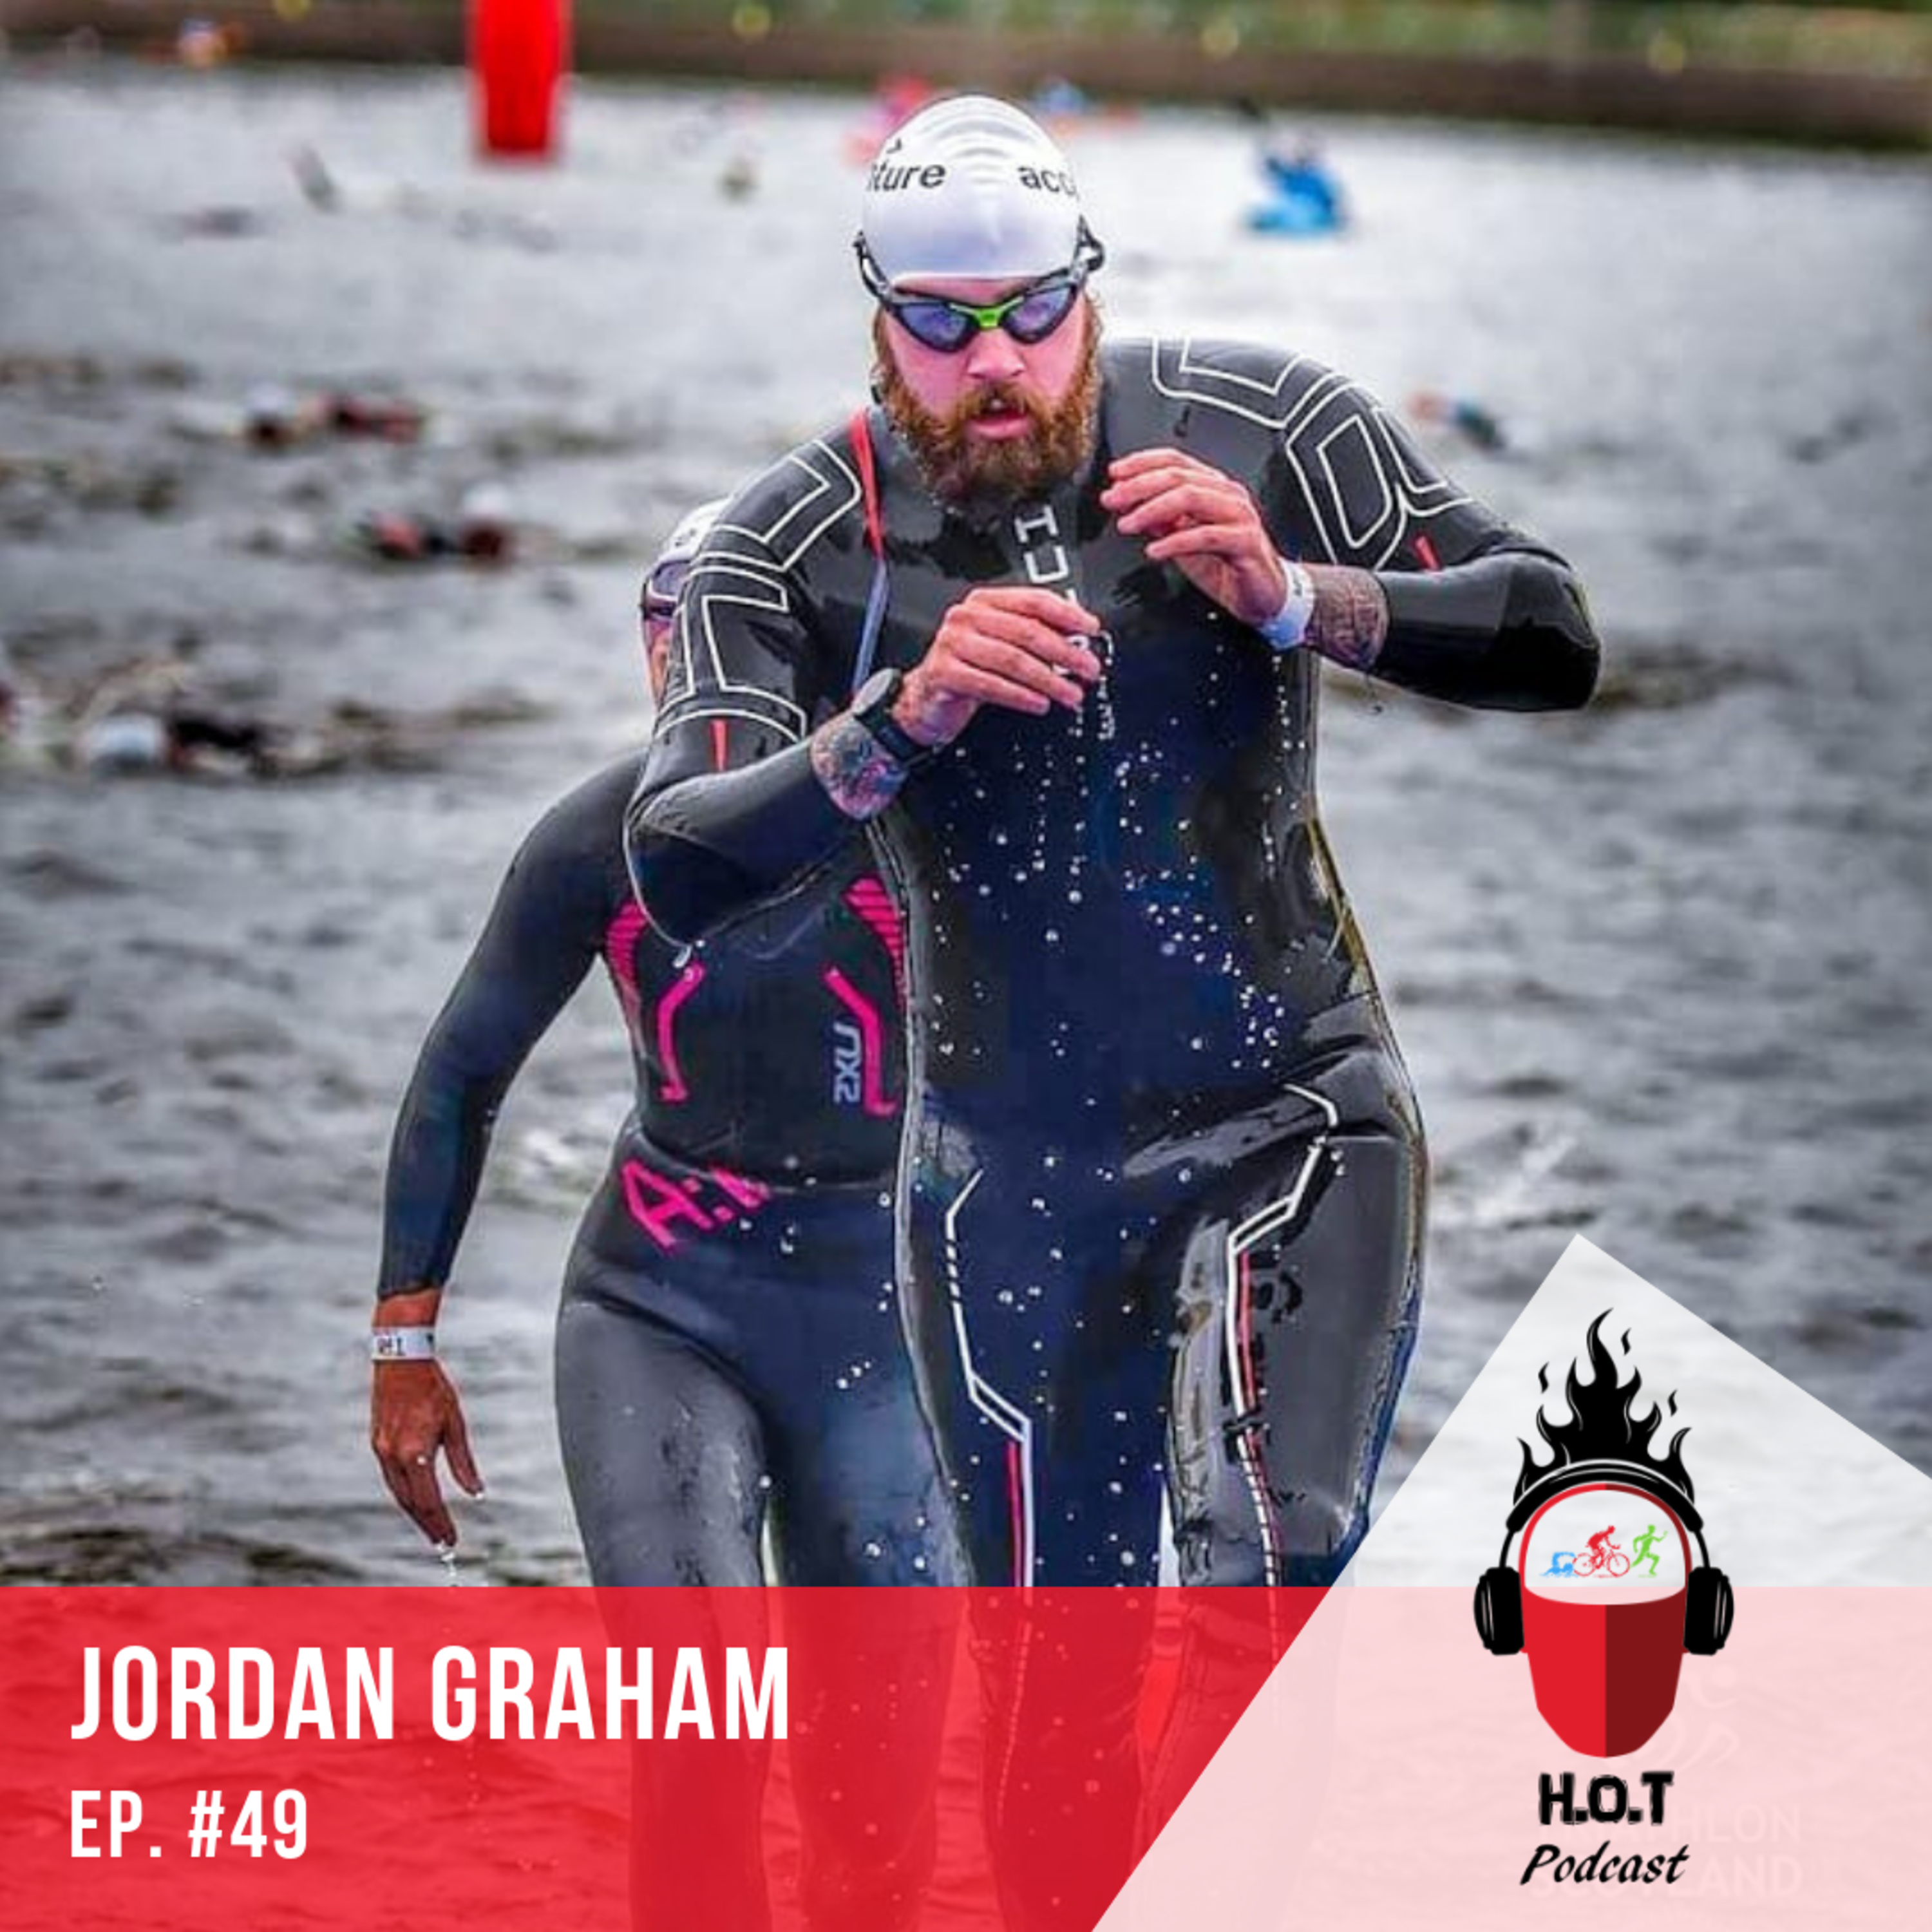 Ep. #49: Jordan Graham | Cancer Survivor from Scotland doing Triathlon to be more than just 'The Guy That Had Cancer'